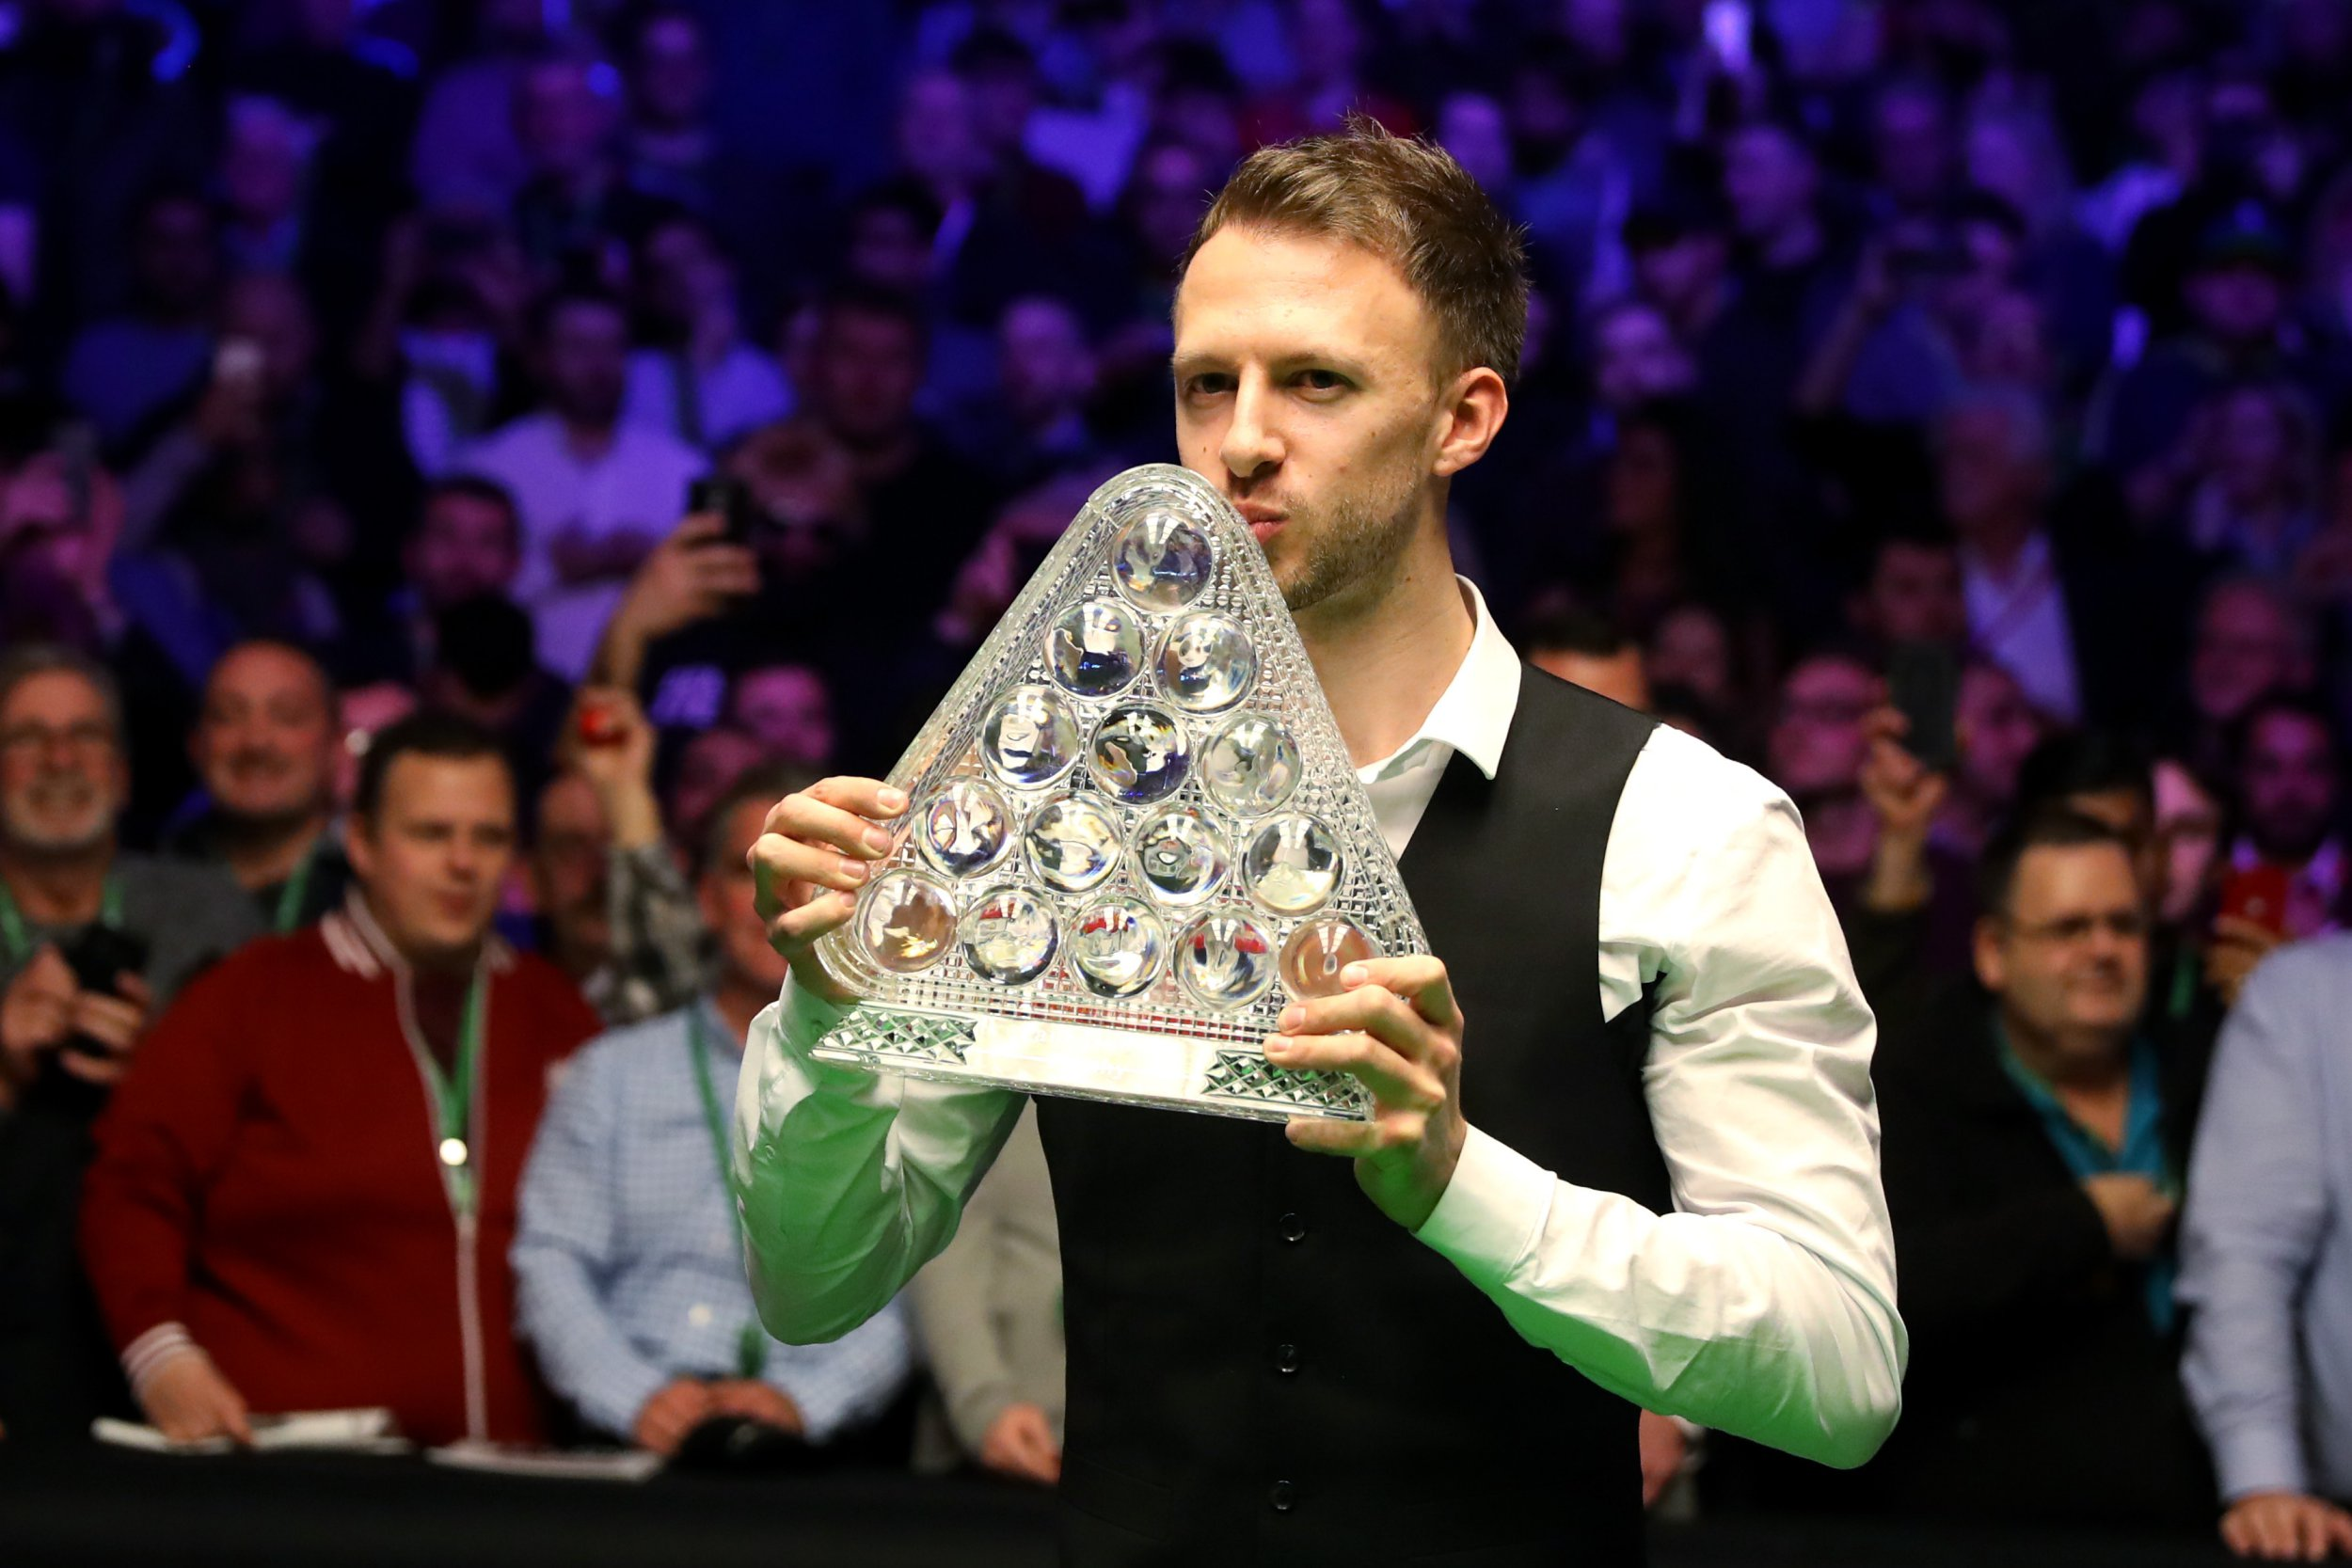 Judd Trump begins his 'granite snooker' era with Masters thumping of Ronnie O'Sullivan